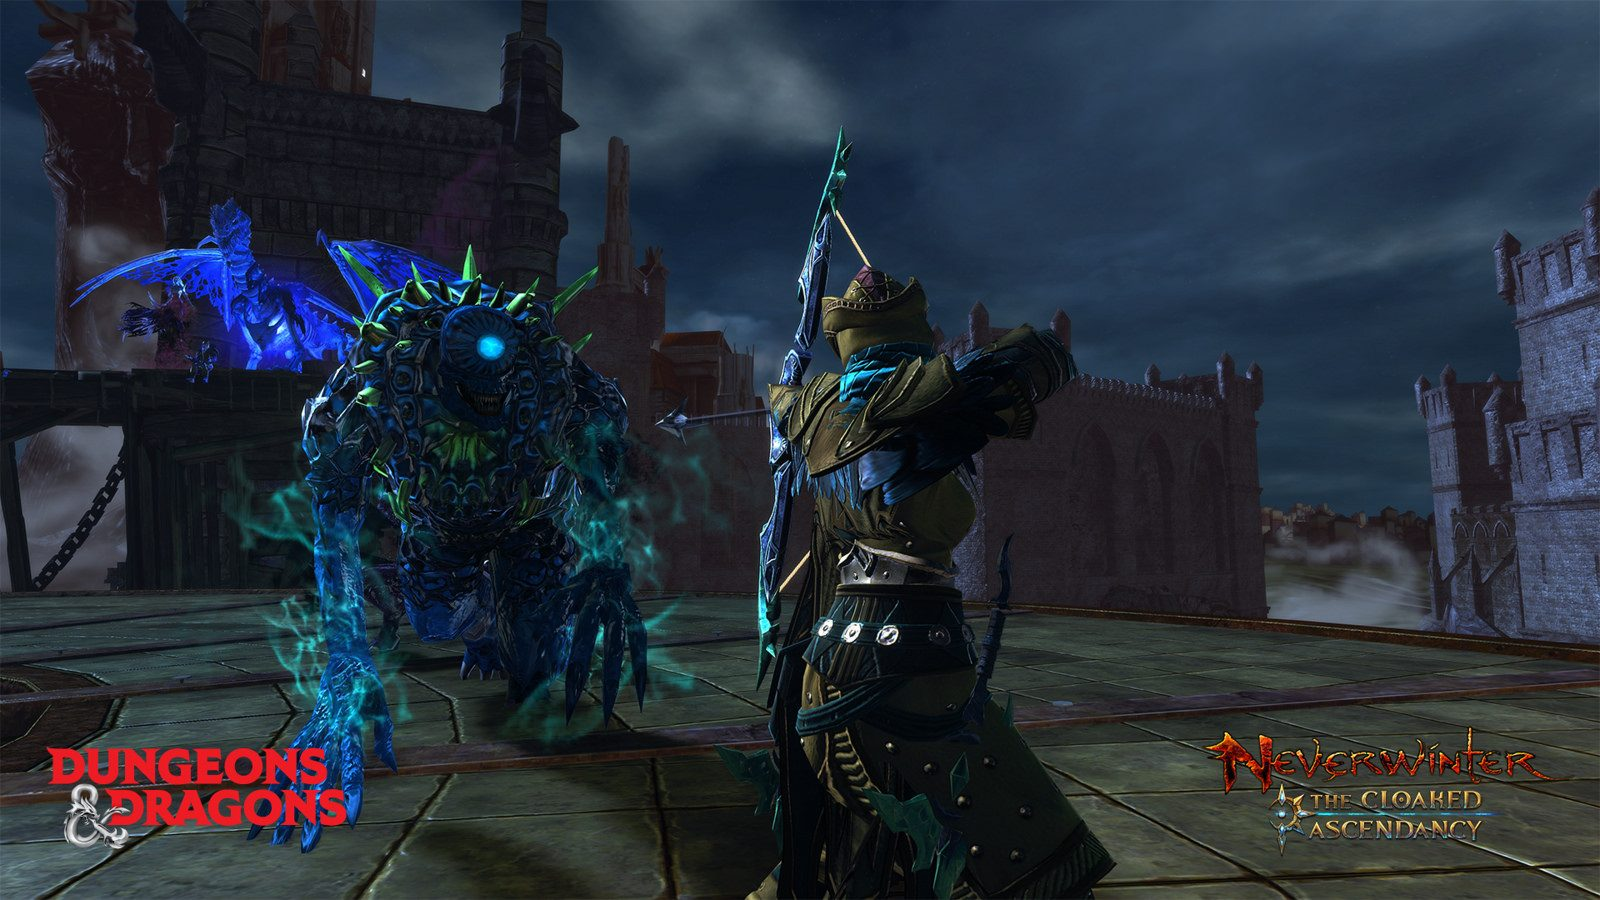 Neverwinter: The Cloaked Ascendancy Arrives on PS4 April 11